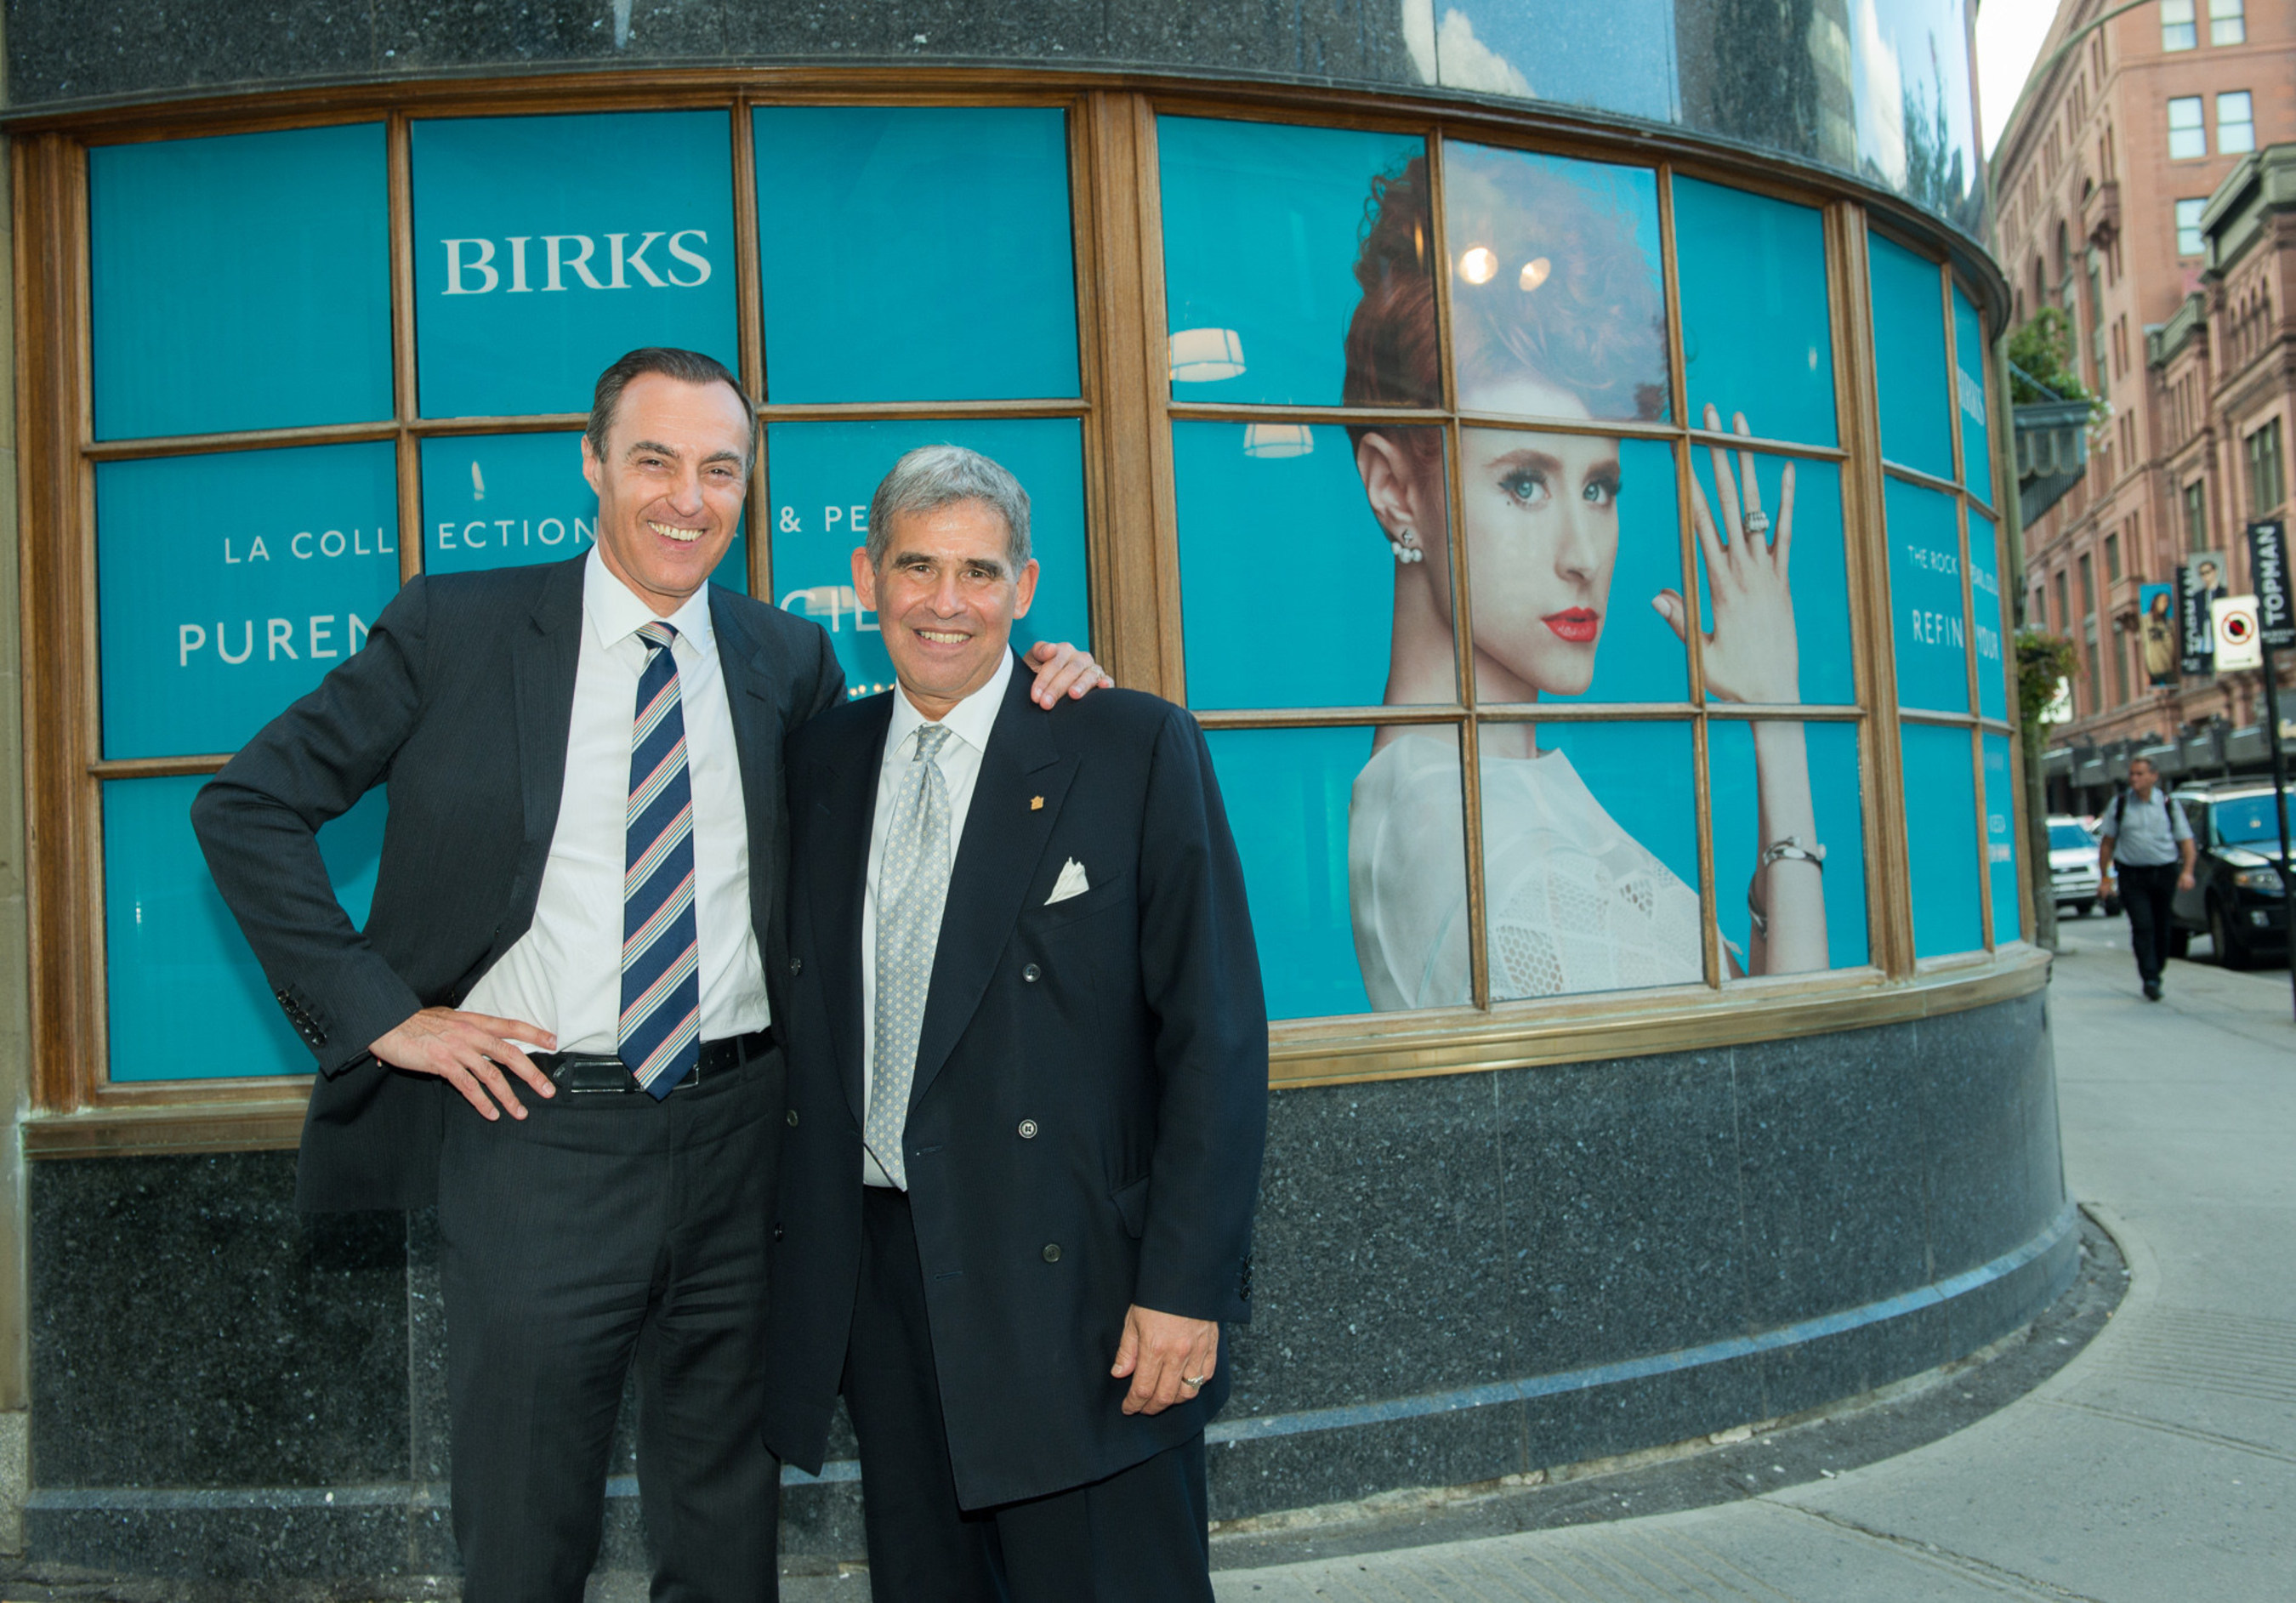 Birks Group and Rideau announce strategic alliance: Rideau acquires Birks Corporate Sales Division